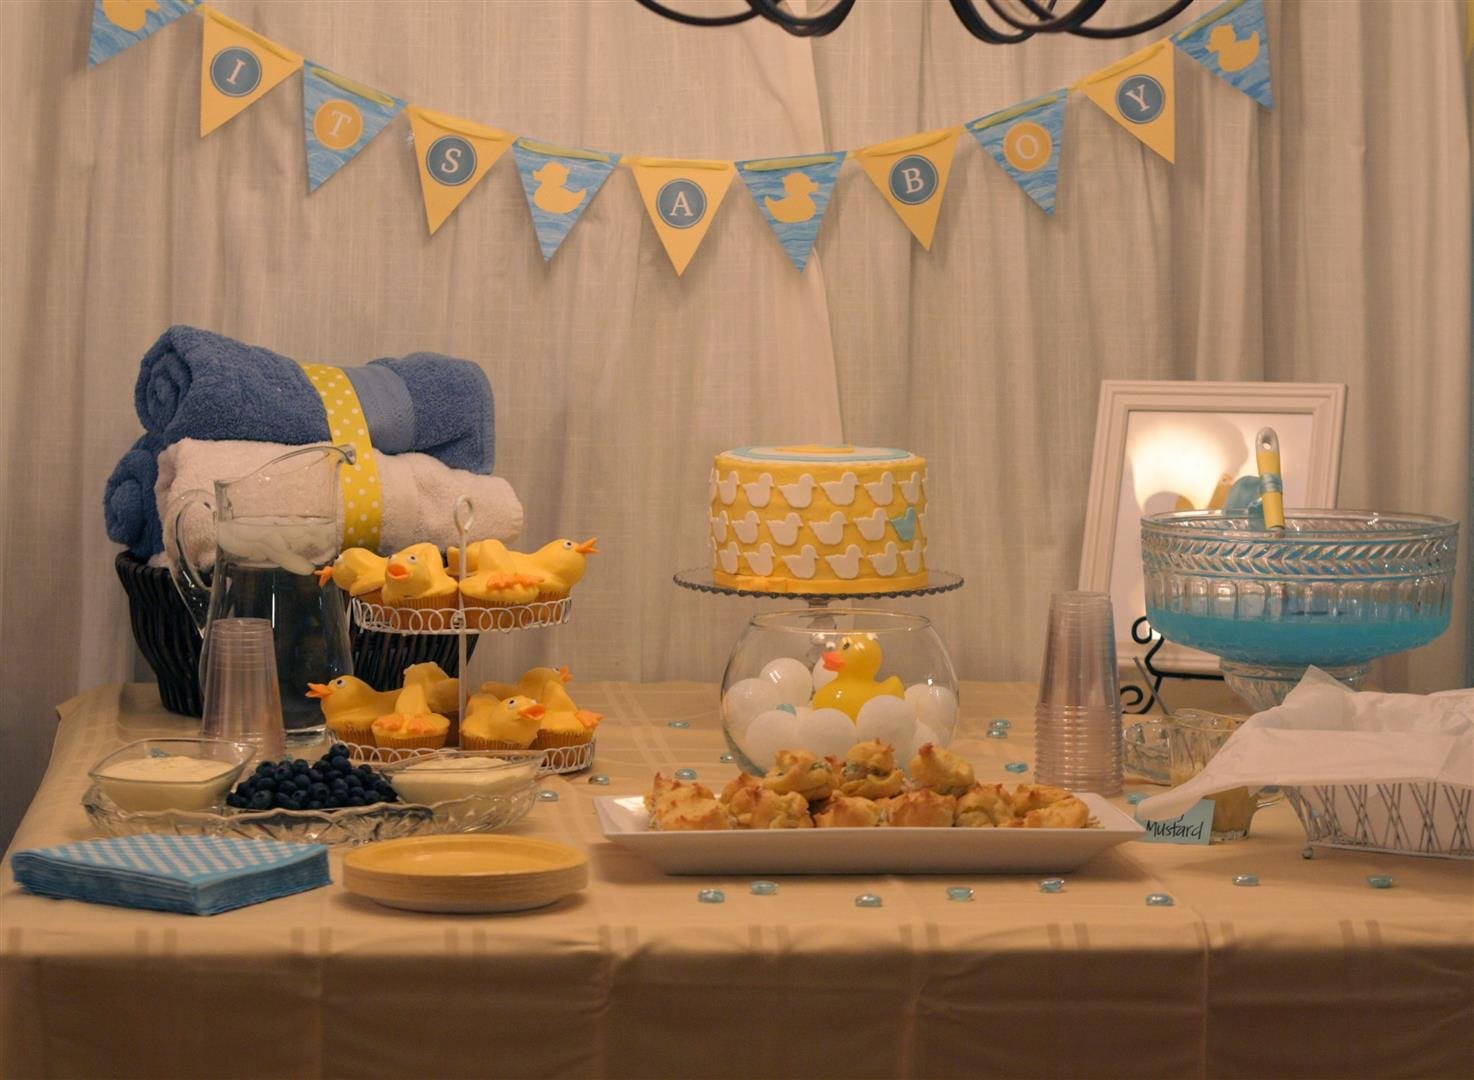 Patty Cakes Bakery: Rubber Ducky Baby Shower